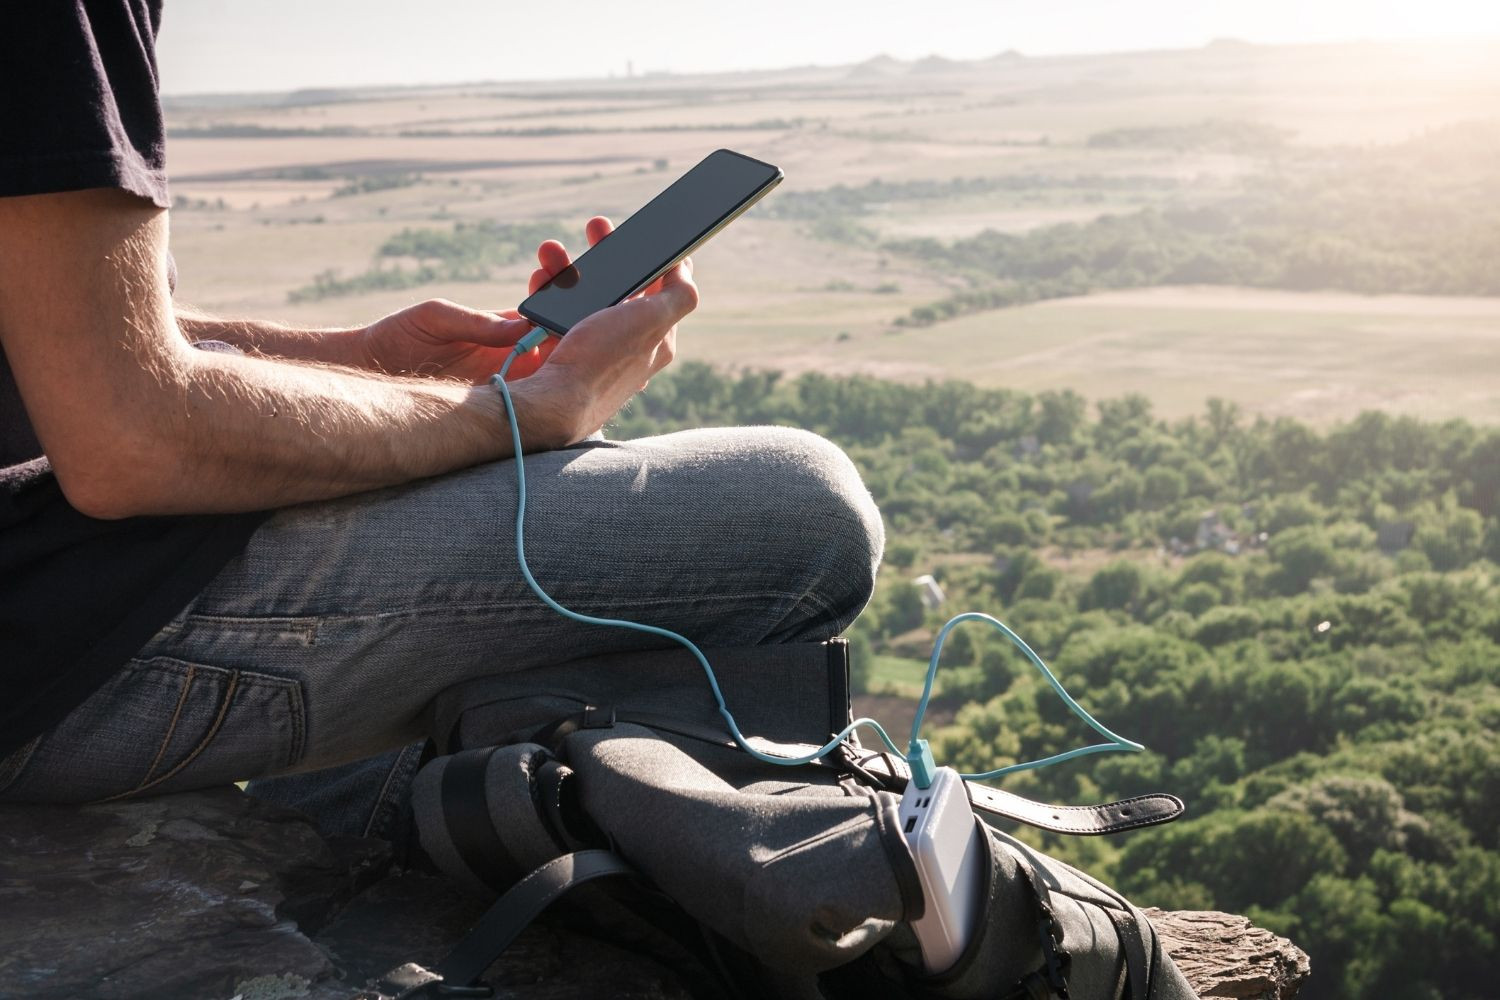 Tips for Keeping Your Devices Charged While Camping